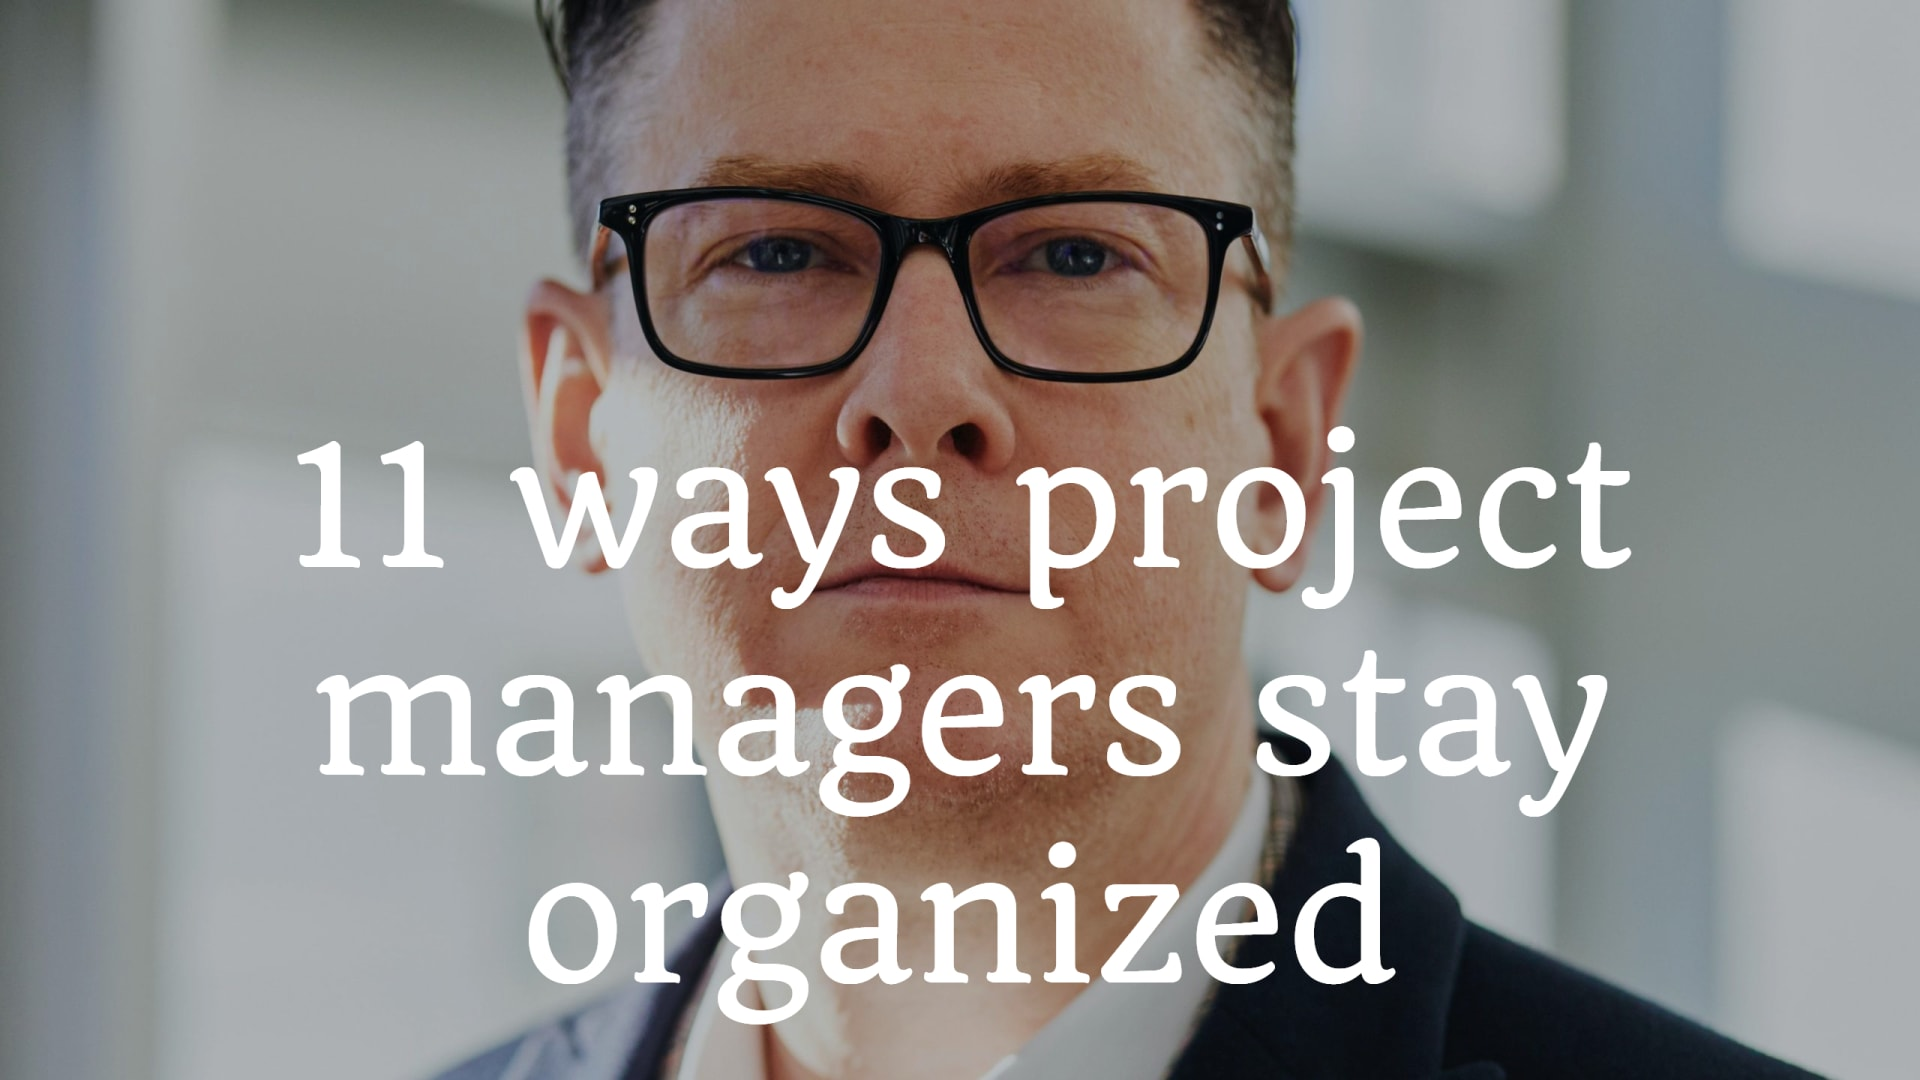 11 ways project managers stay organized